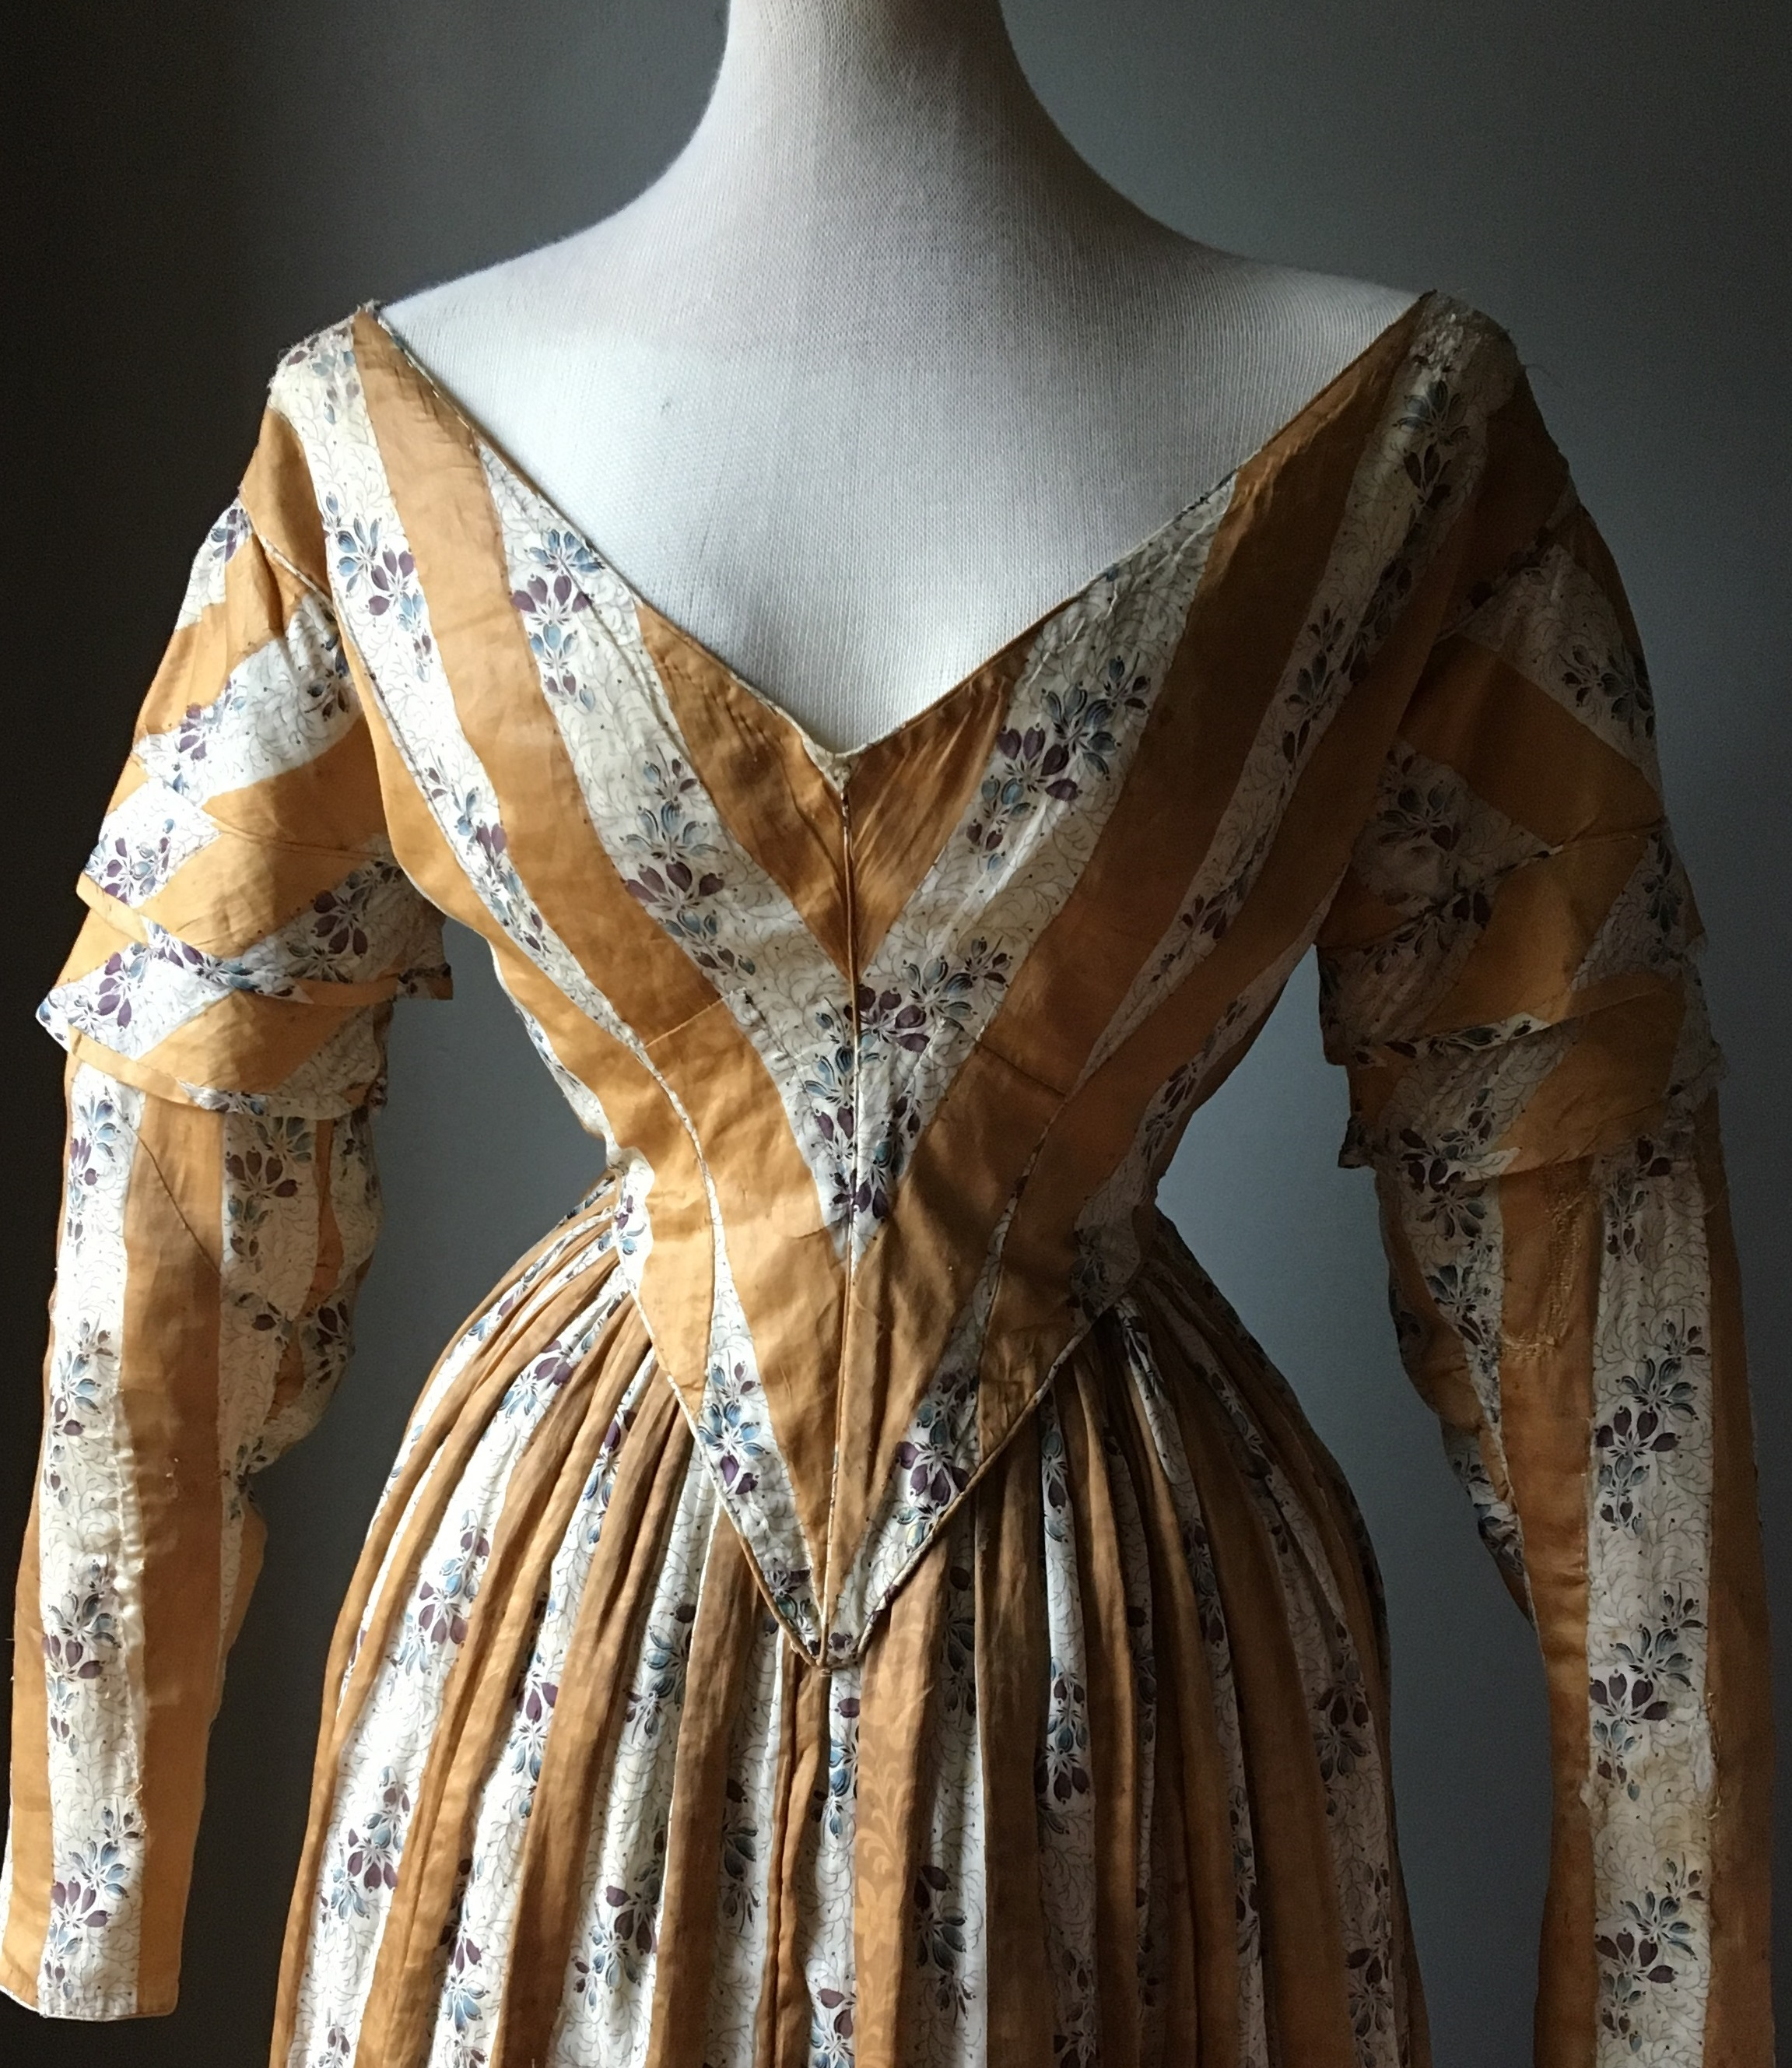 Costume - Narryna has a as nationally-significant collection of 19th and early 20th century costume and dress.